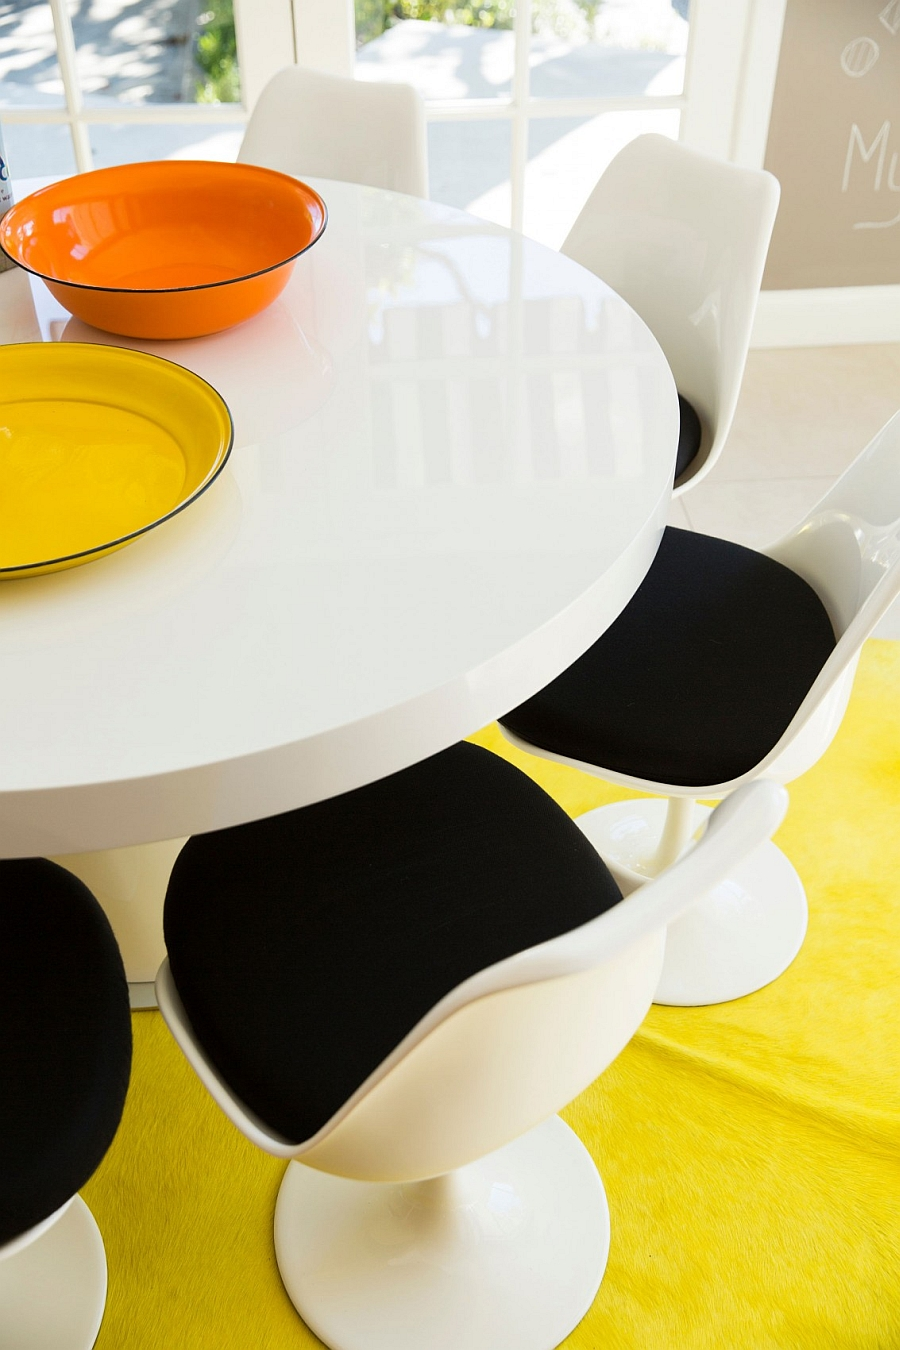 Dining table and chairs inspired by the iconic Tulip Design